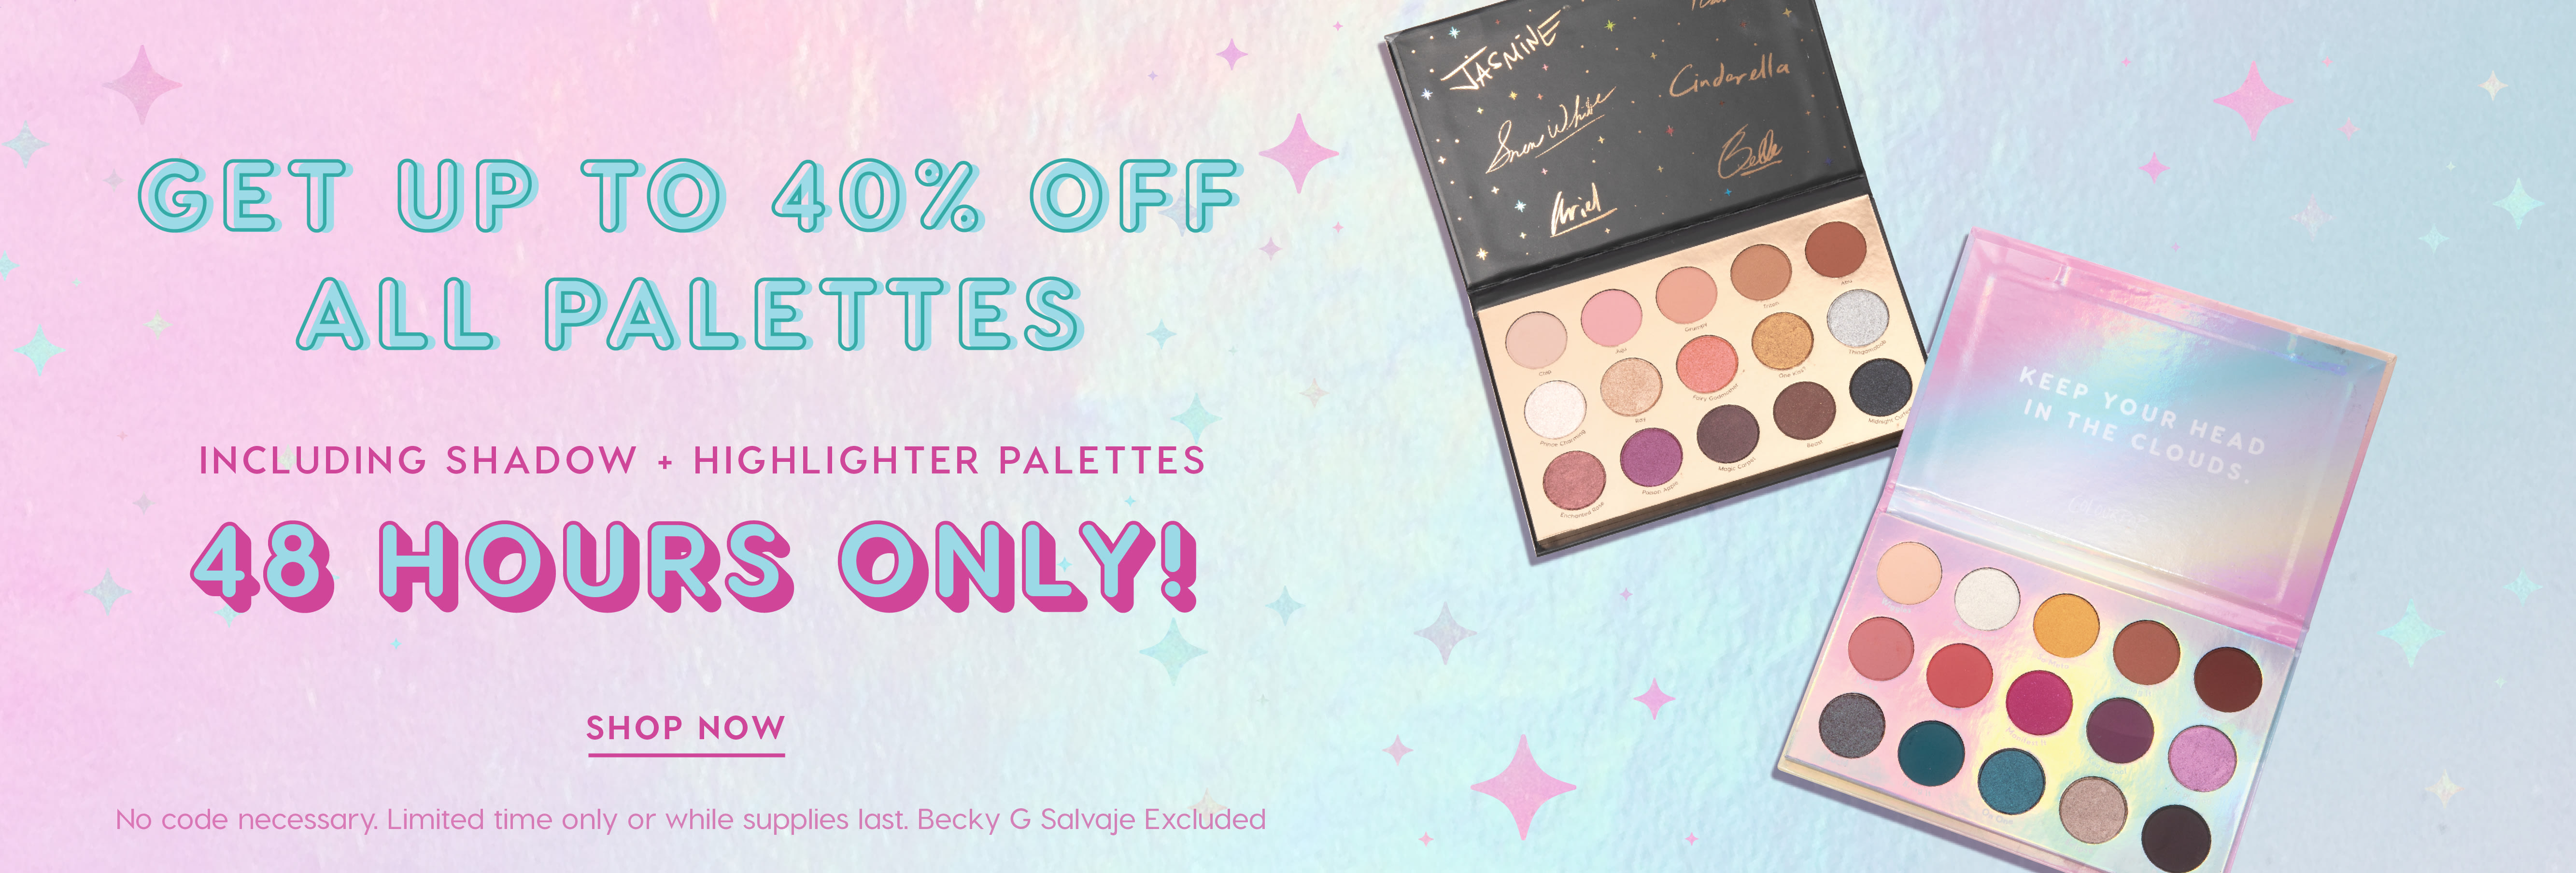 Palette Party! All Palettes up to 40% Off